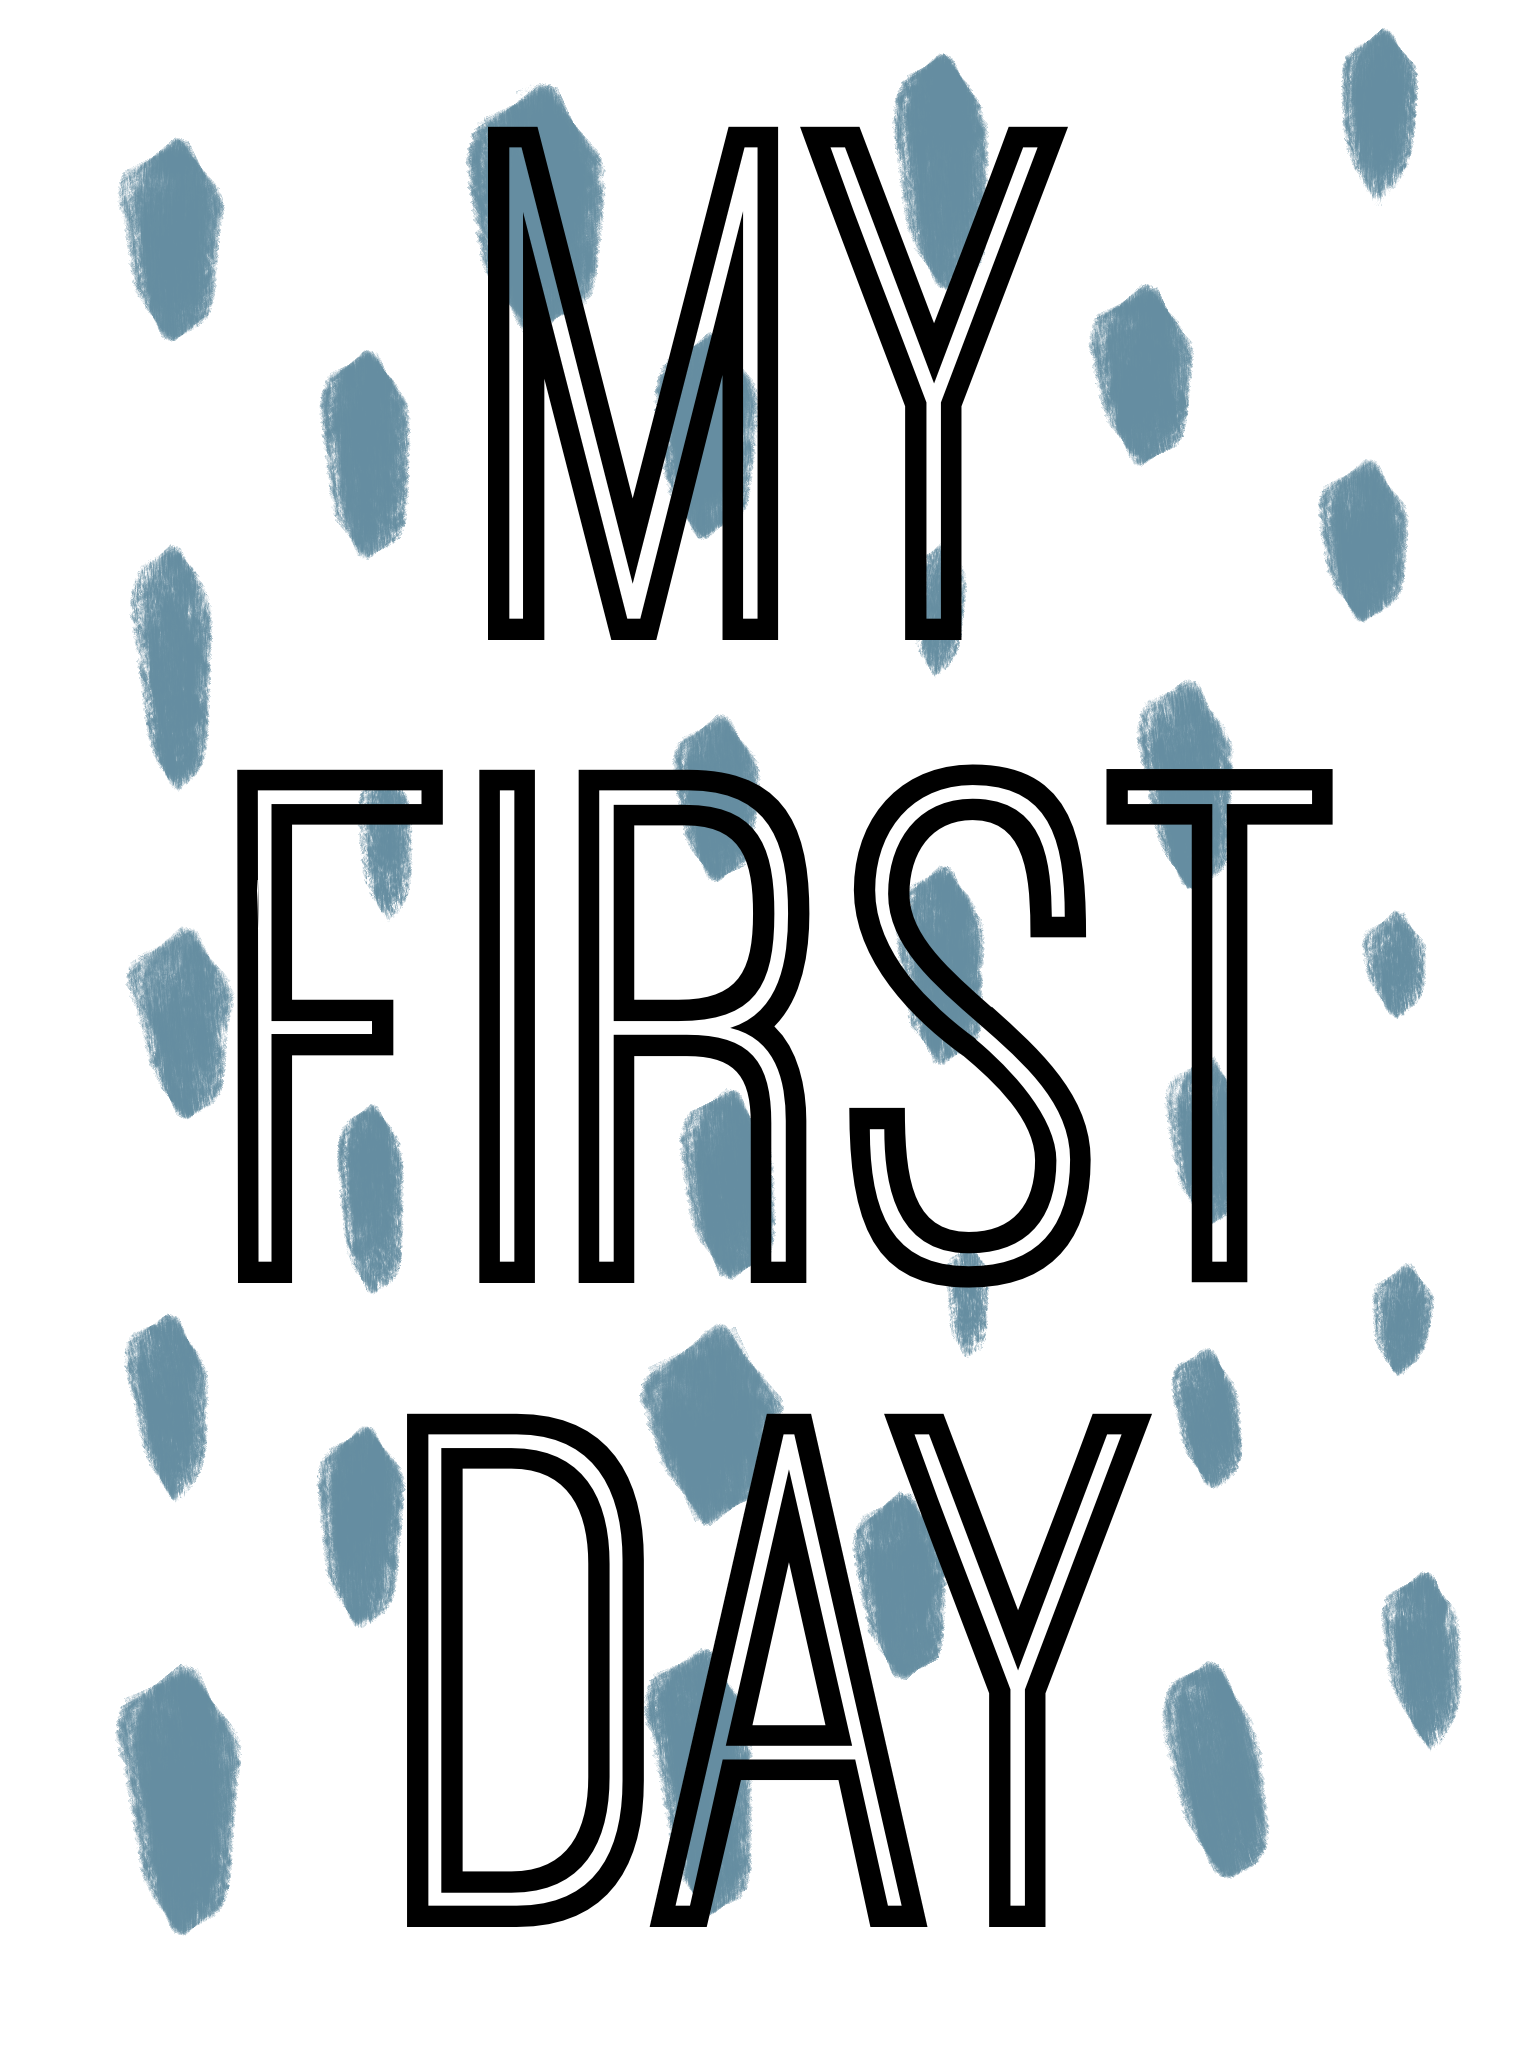 Boys First Day Printable